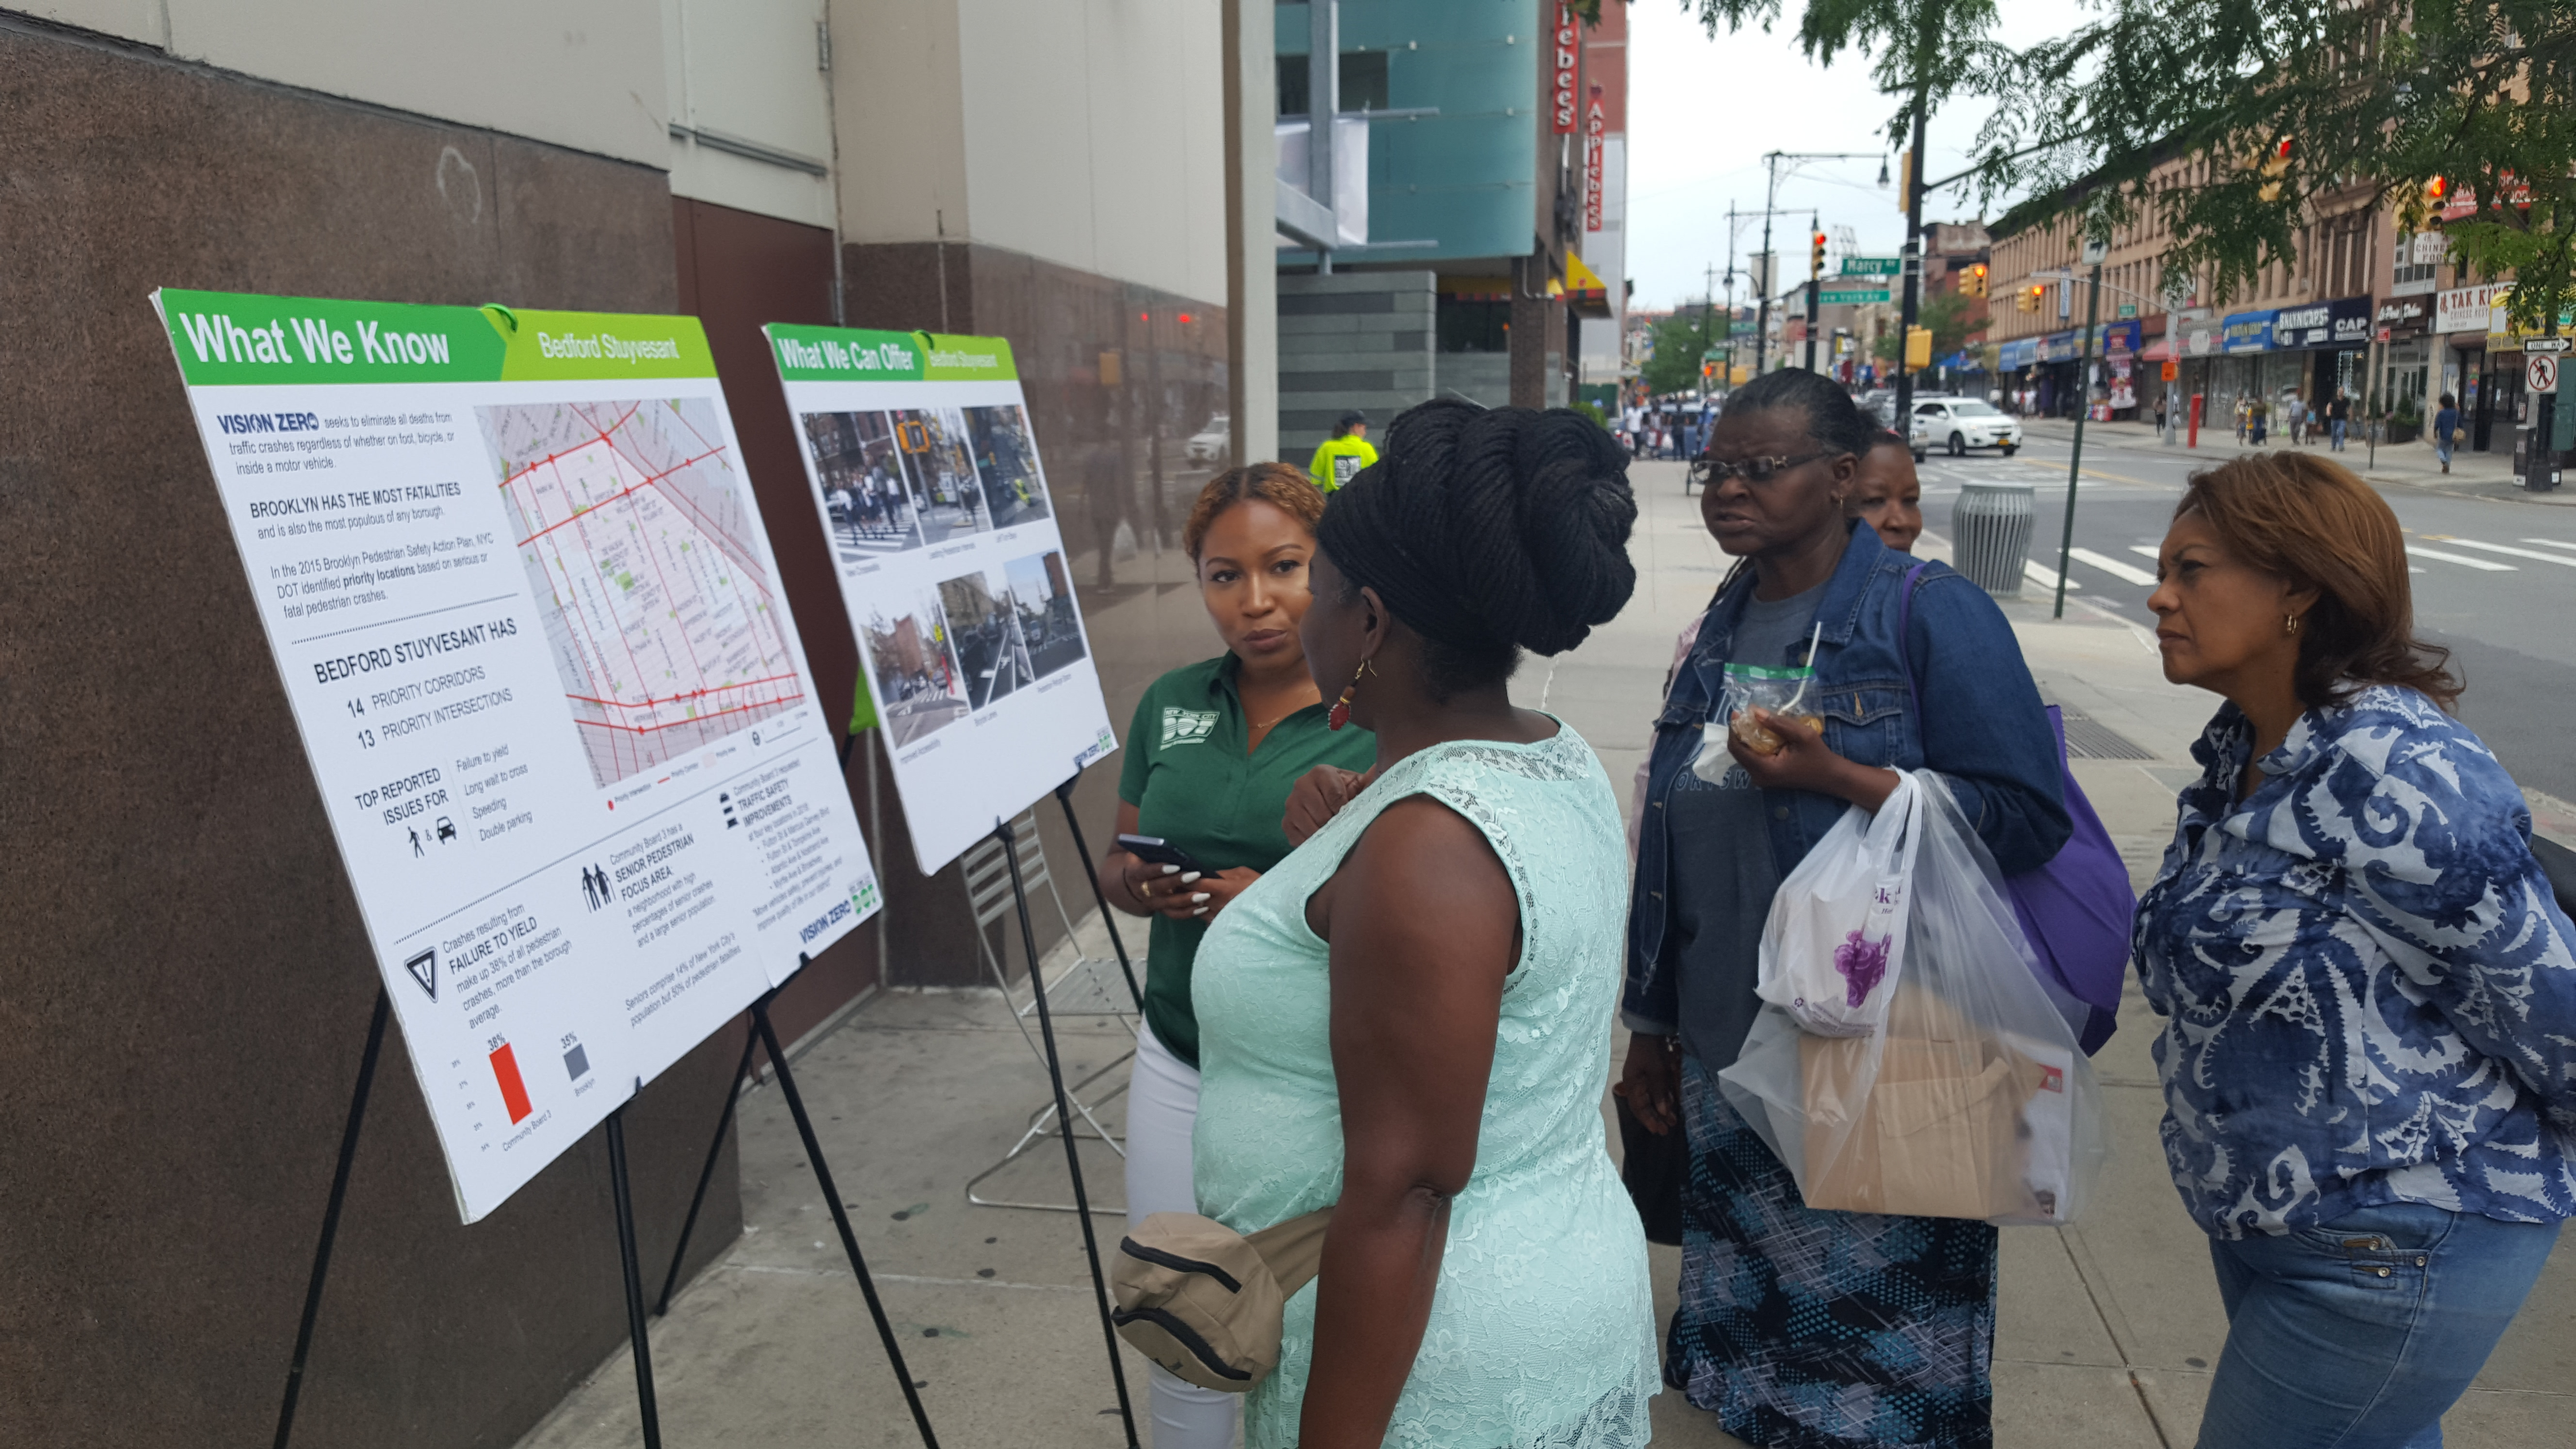 A Street Ambassador talks about transportation safety with folks passing by Restoration Plaza.